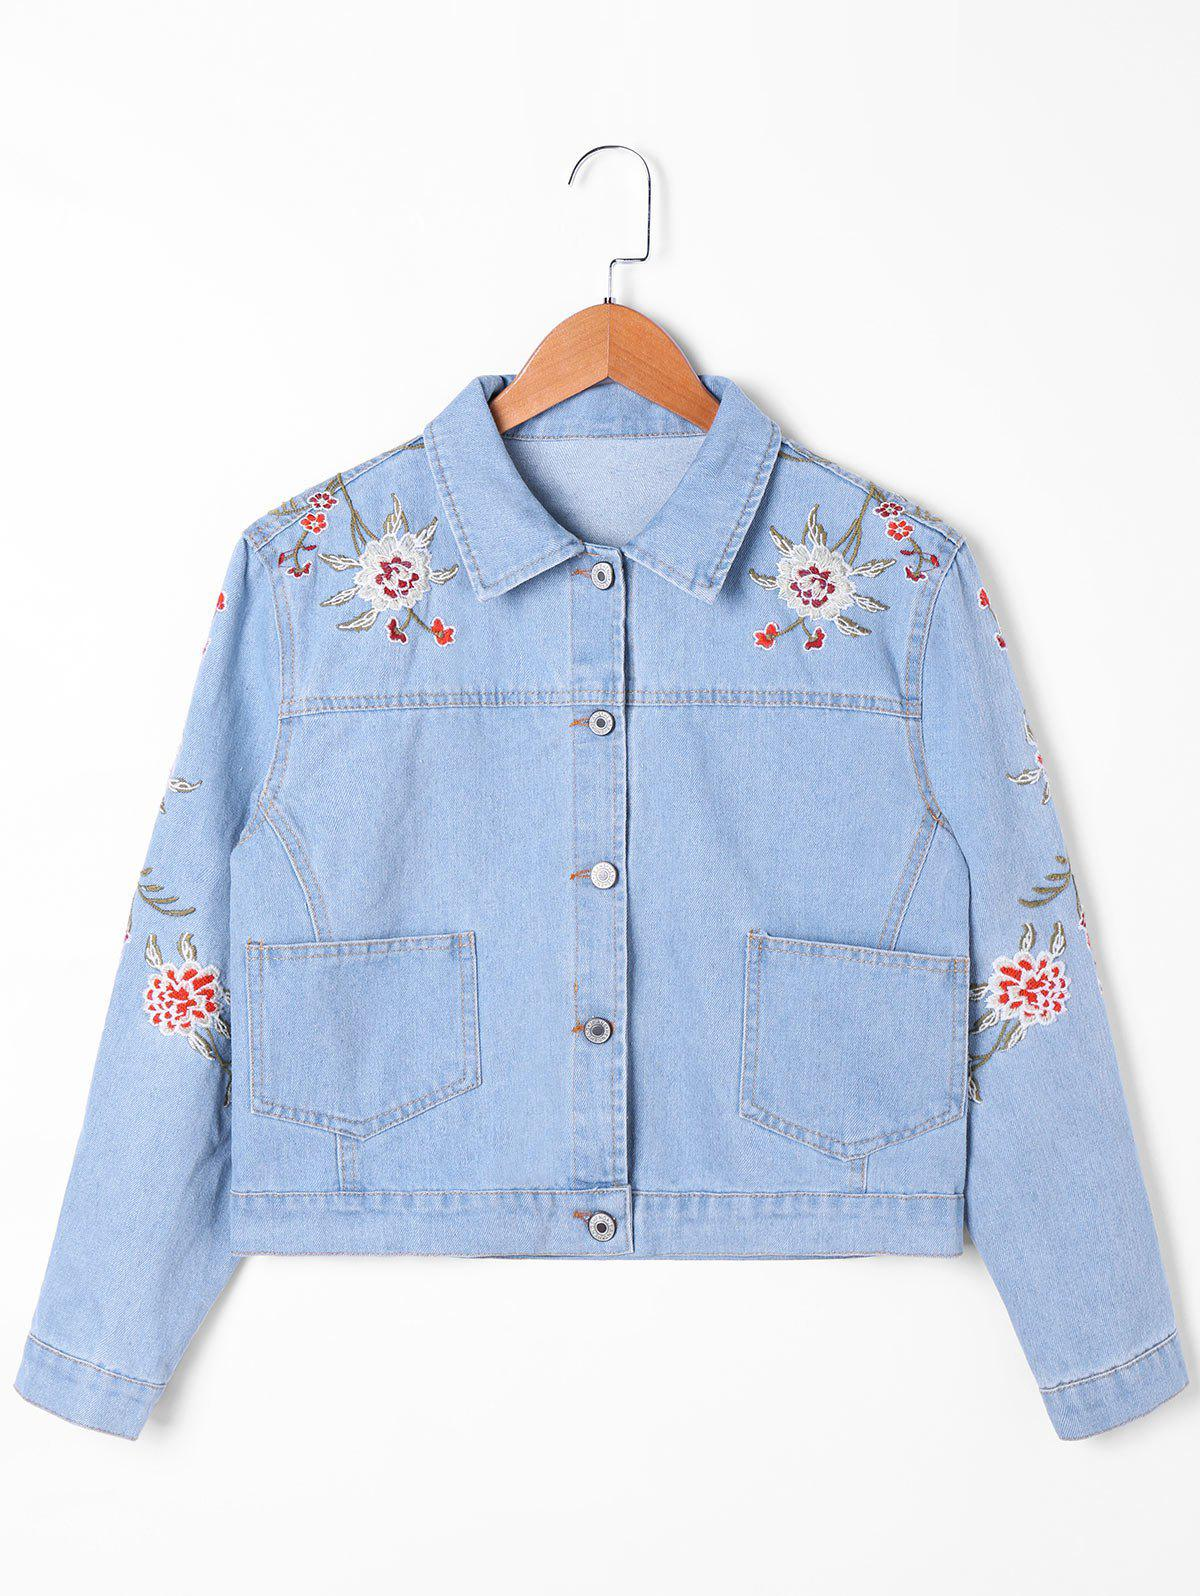 Outfits Drop Pocket Embroidery Jean Jacket